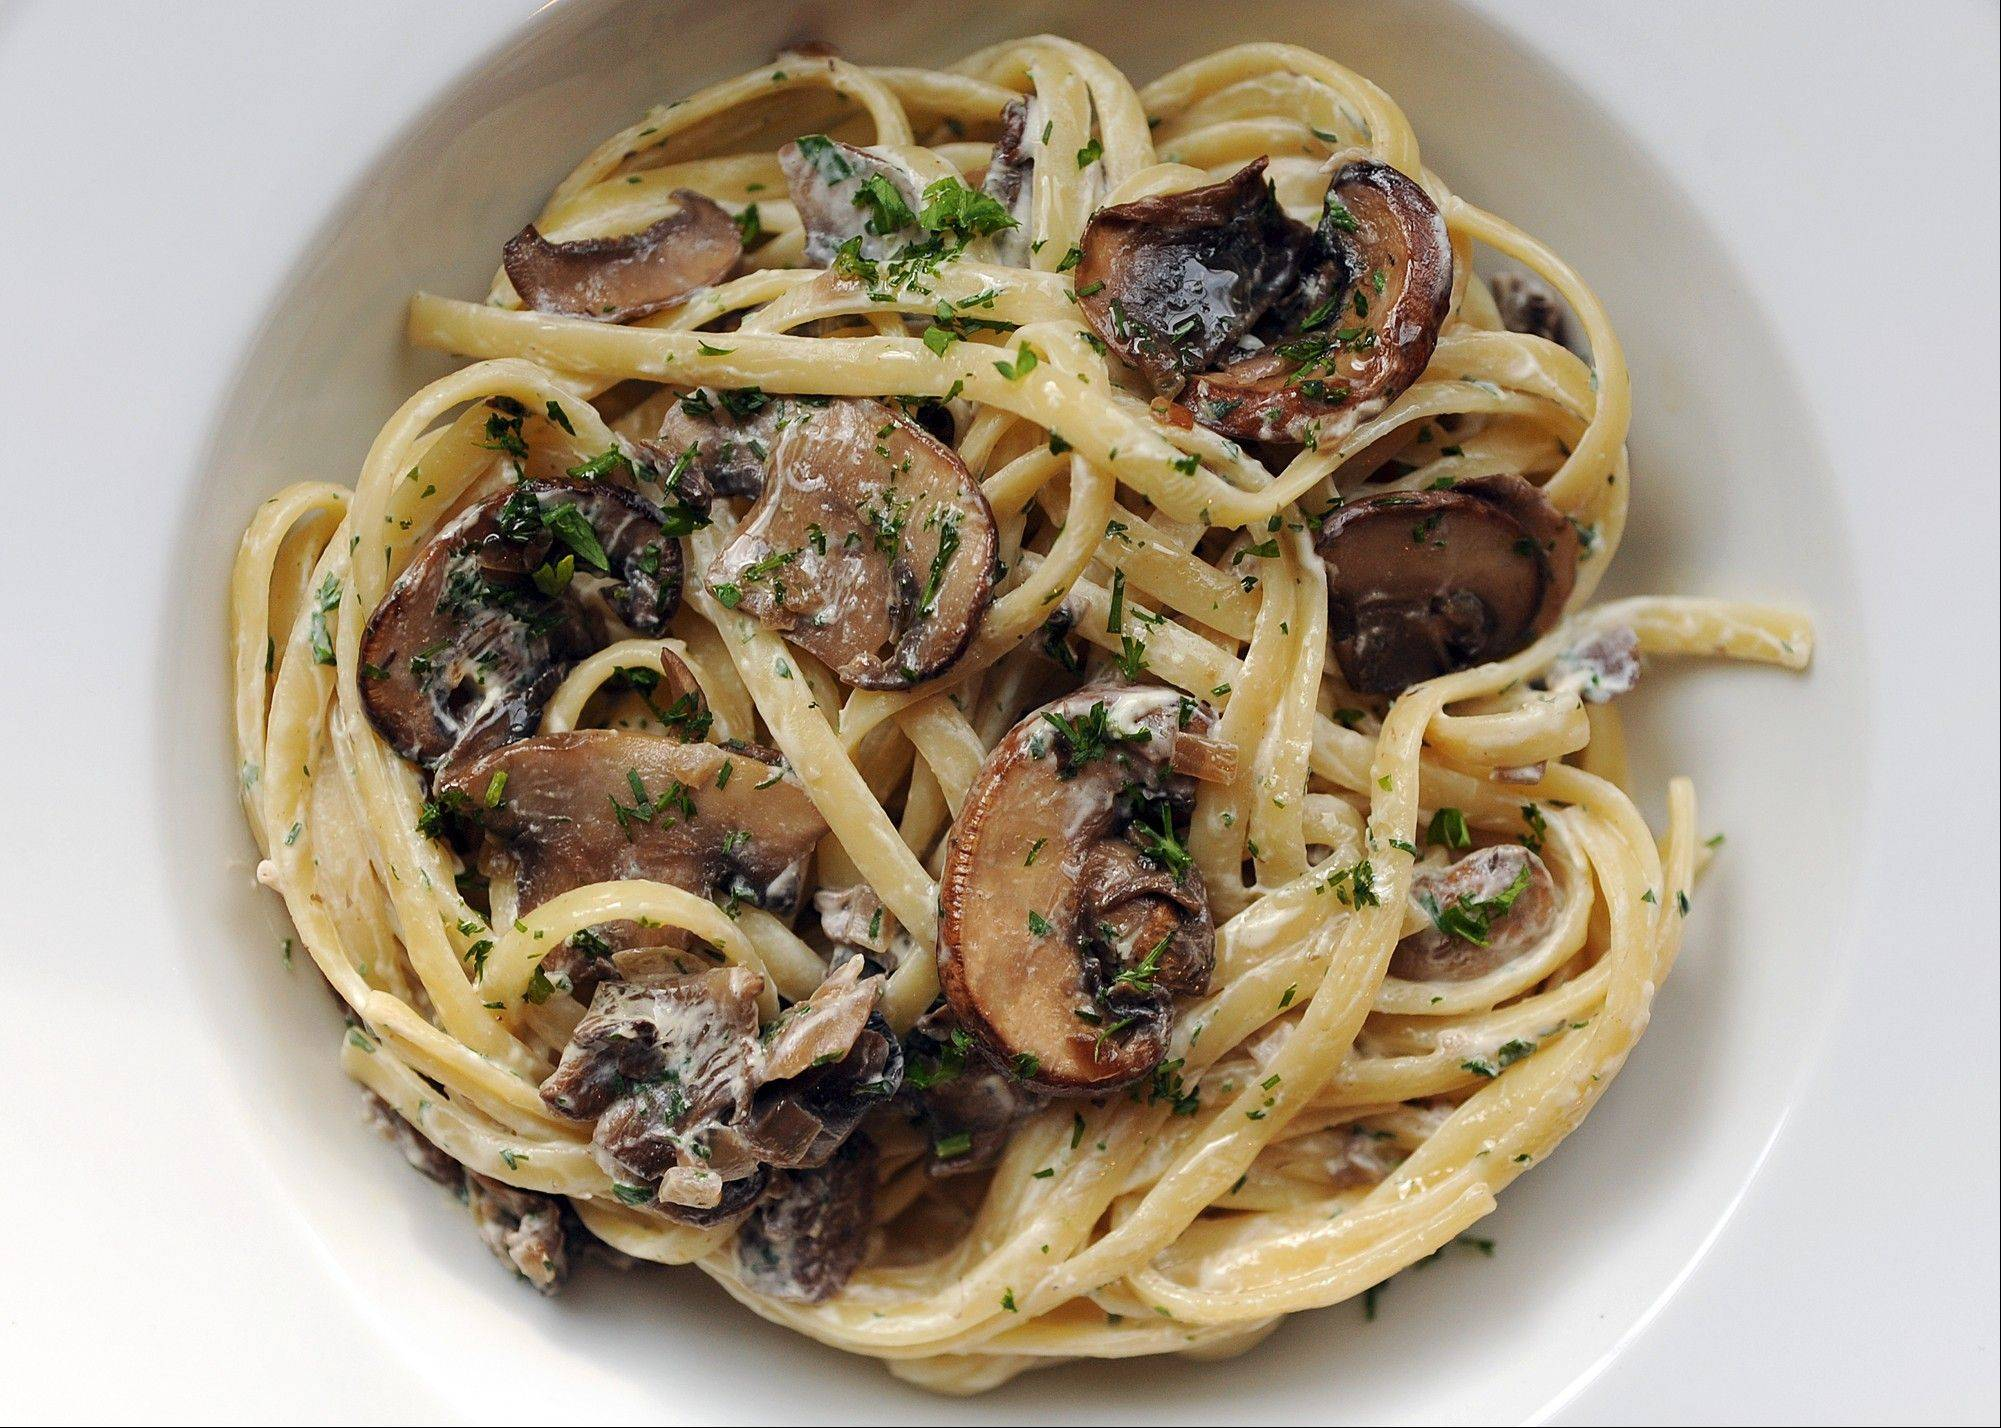 Linguine With Mushrooms Stroganoff Style updates the classic beef stroganoff by adjusting the sour cream and ditching the meat.